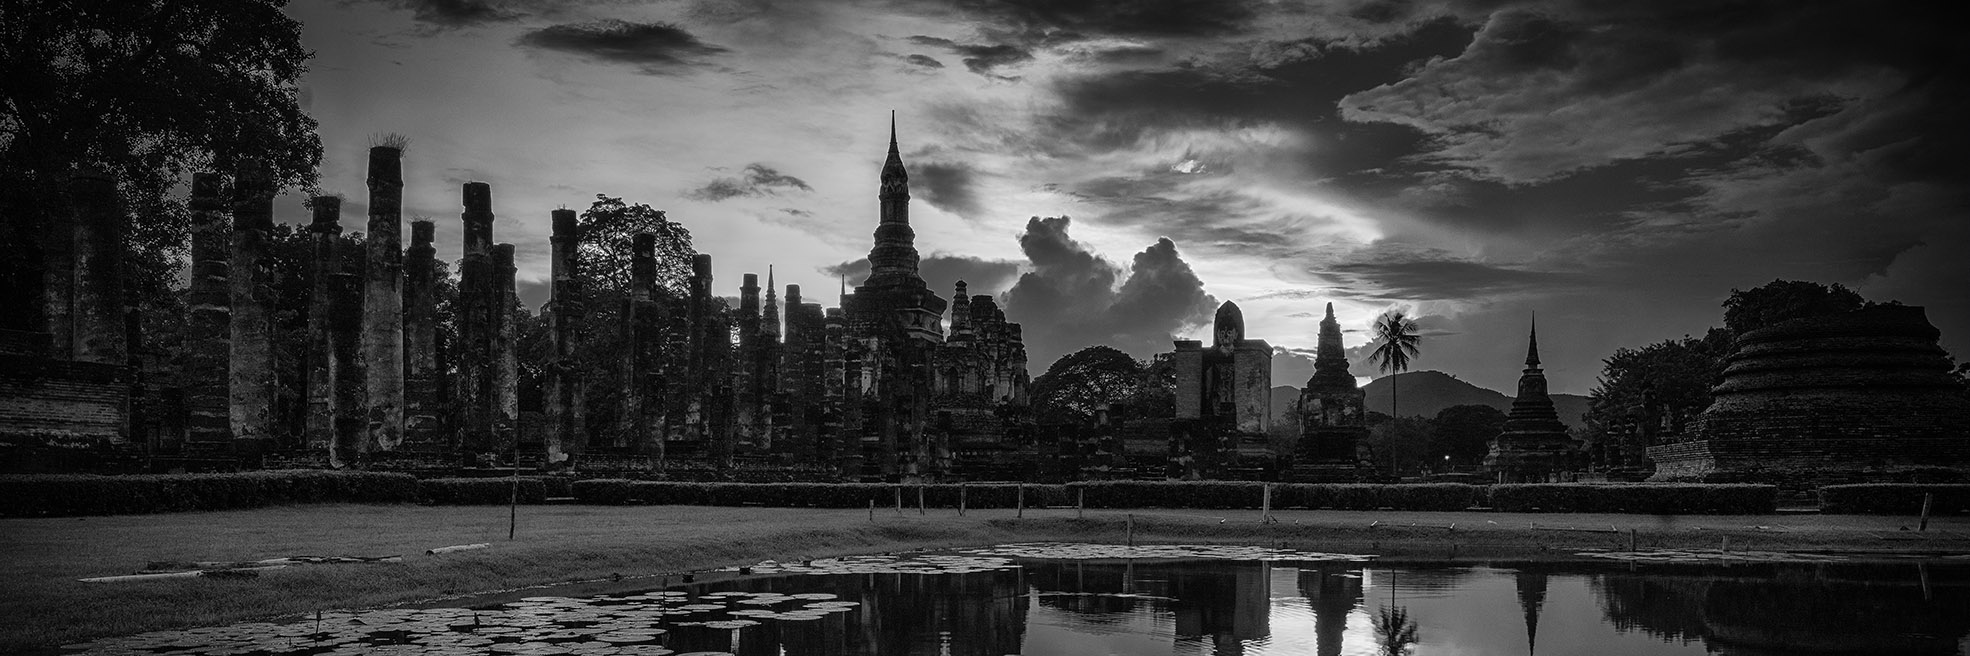 Panoramic image of Sukothai in Thailand in Black and White